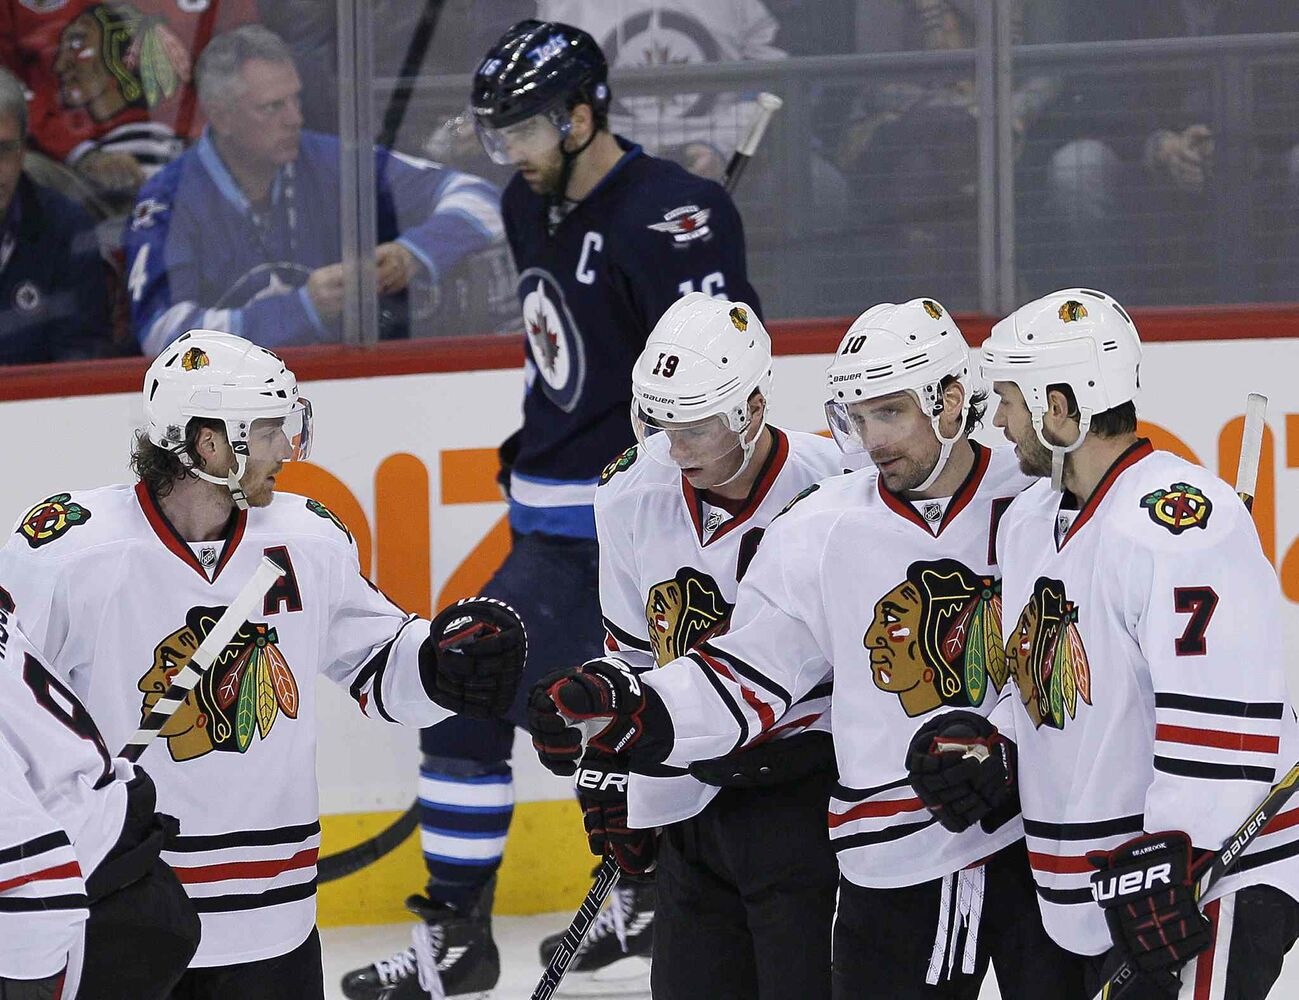 Chicago Blackhawks (from left) Duncan Keith, Jonathan Toews, Patrick Sharp and Brent Seabrook celebrate Sharp's empty-net goal against the Winnipeg Jets during the third period as Jets captain Andrew Ladd skates by.